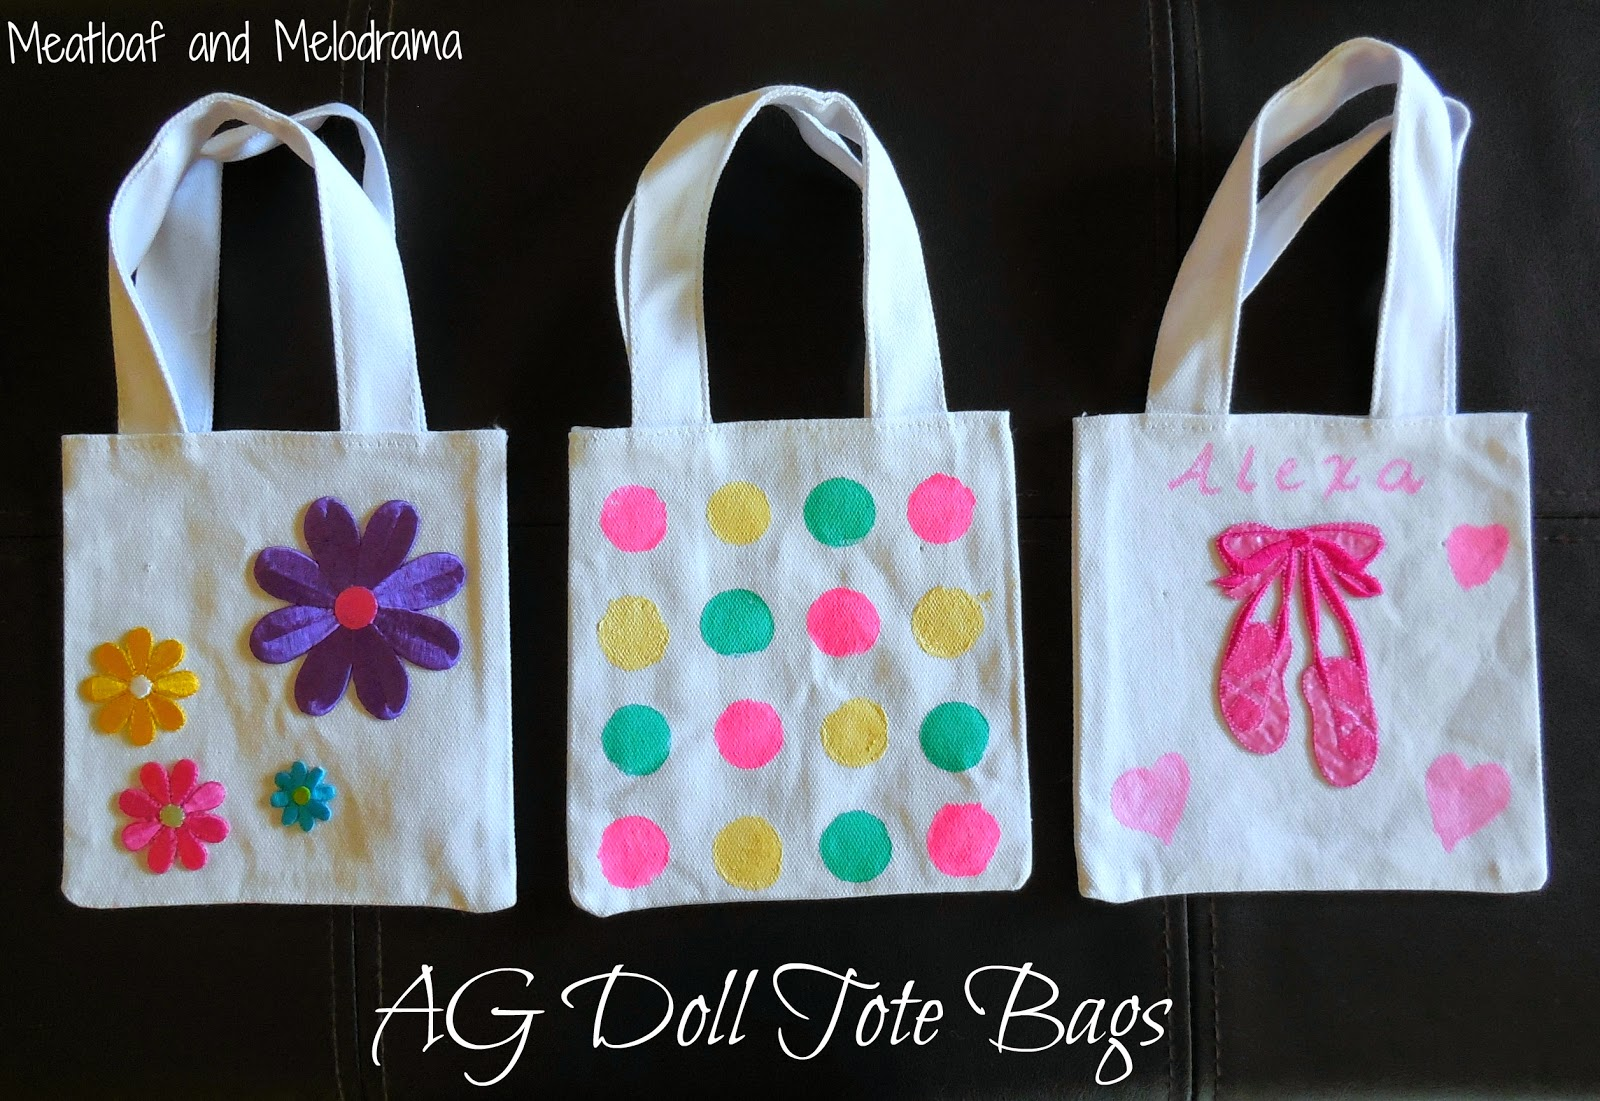 American Girl Doll Tote Bags  Meatloaf and Melodrama